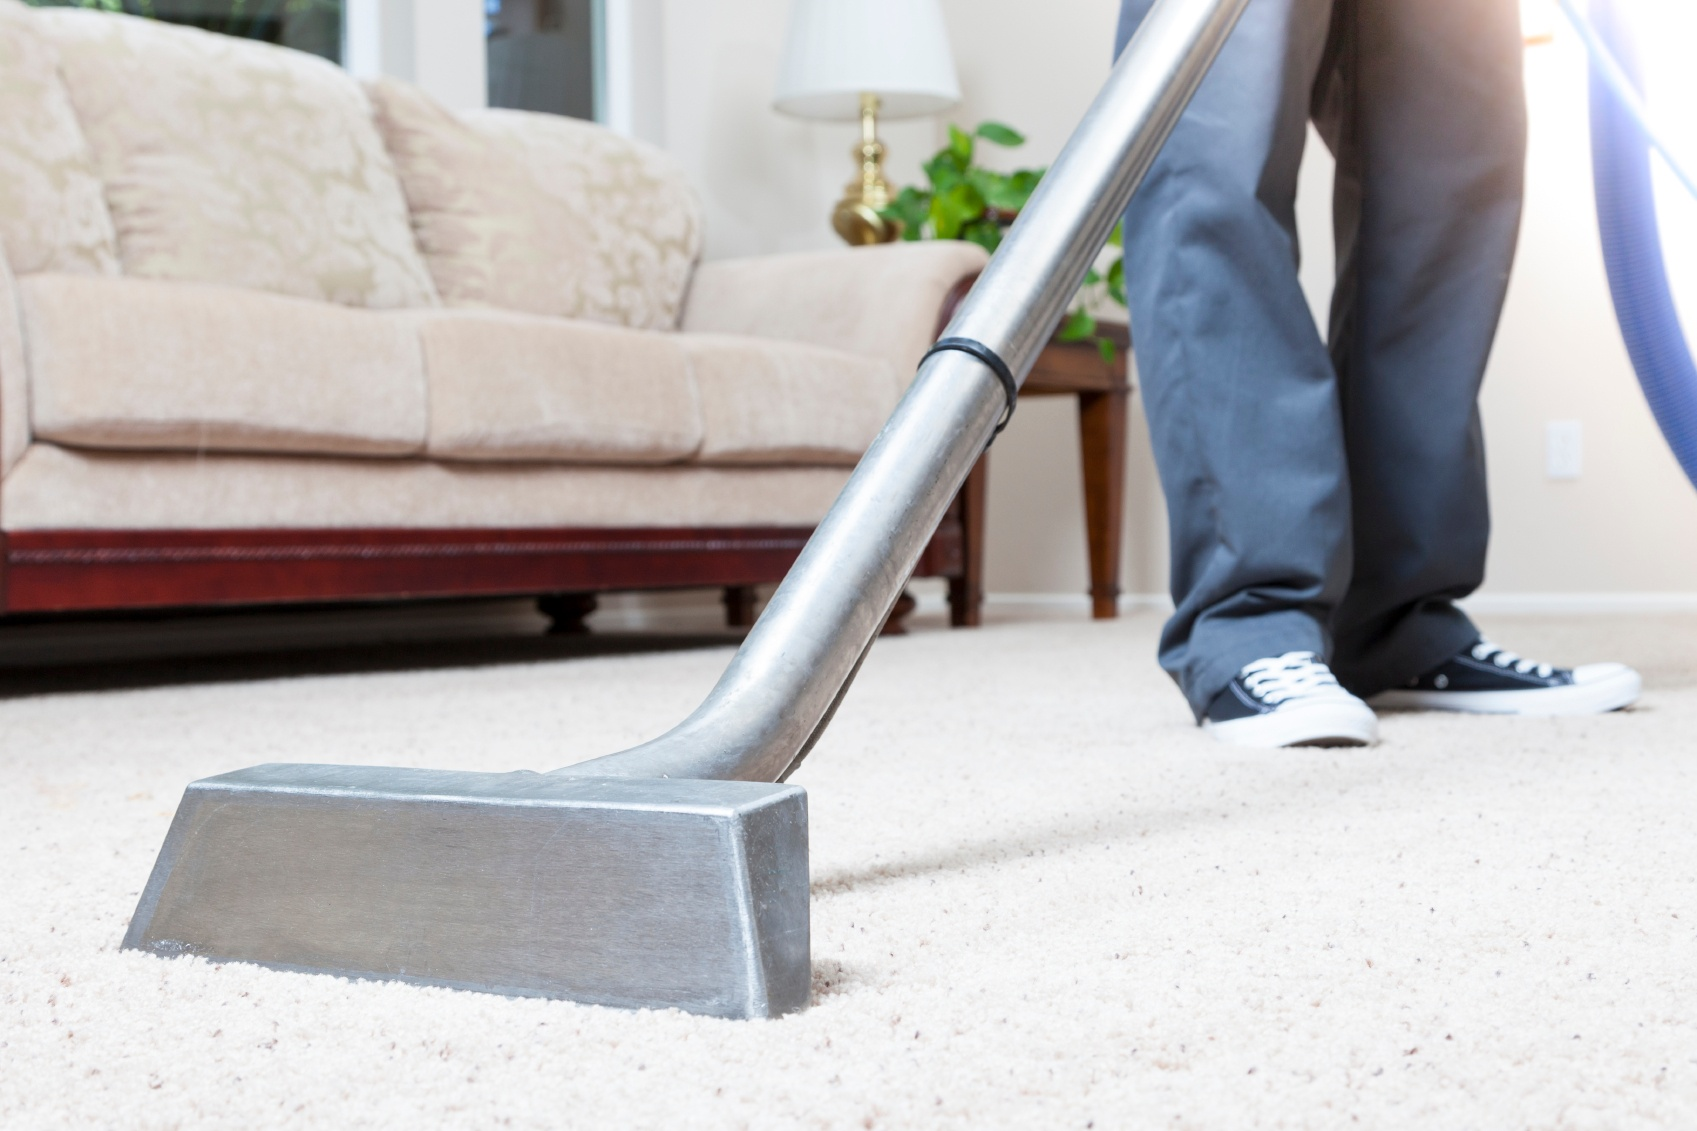 Carpet Cleaning Scheduling Software Image